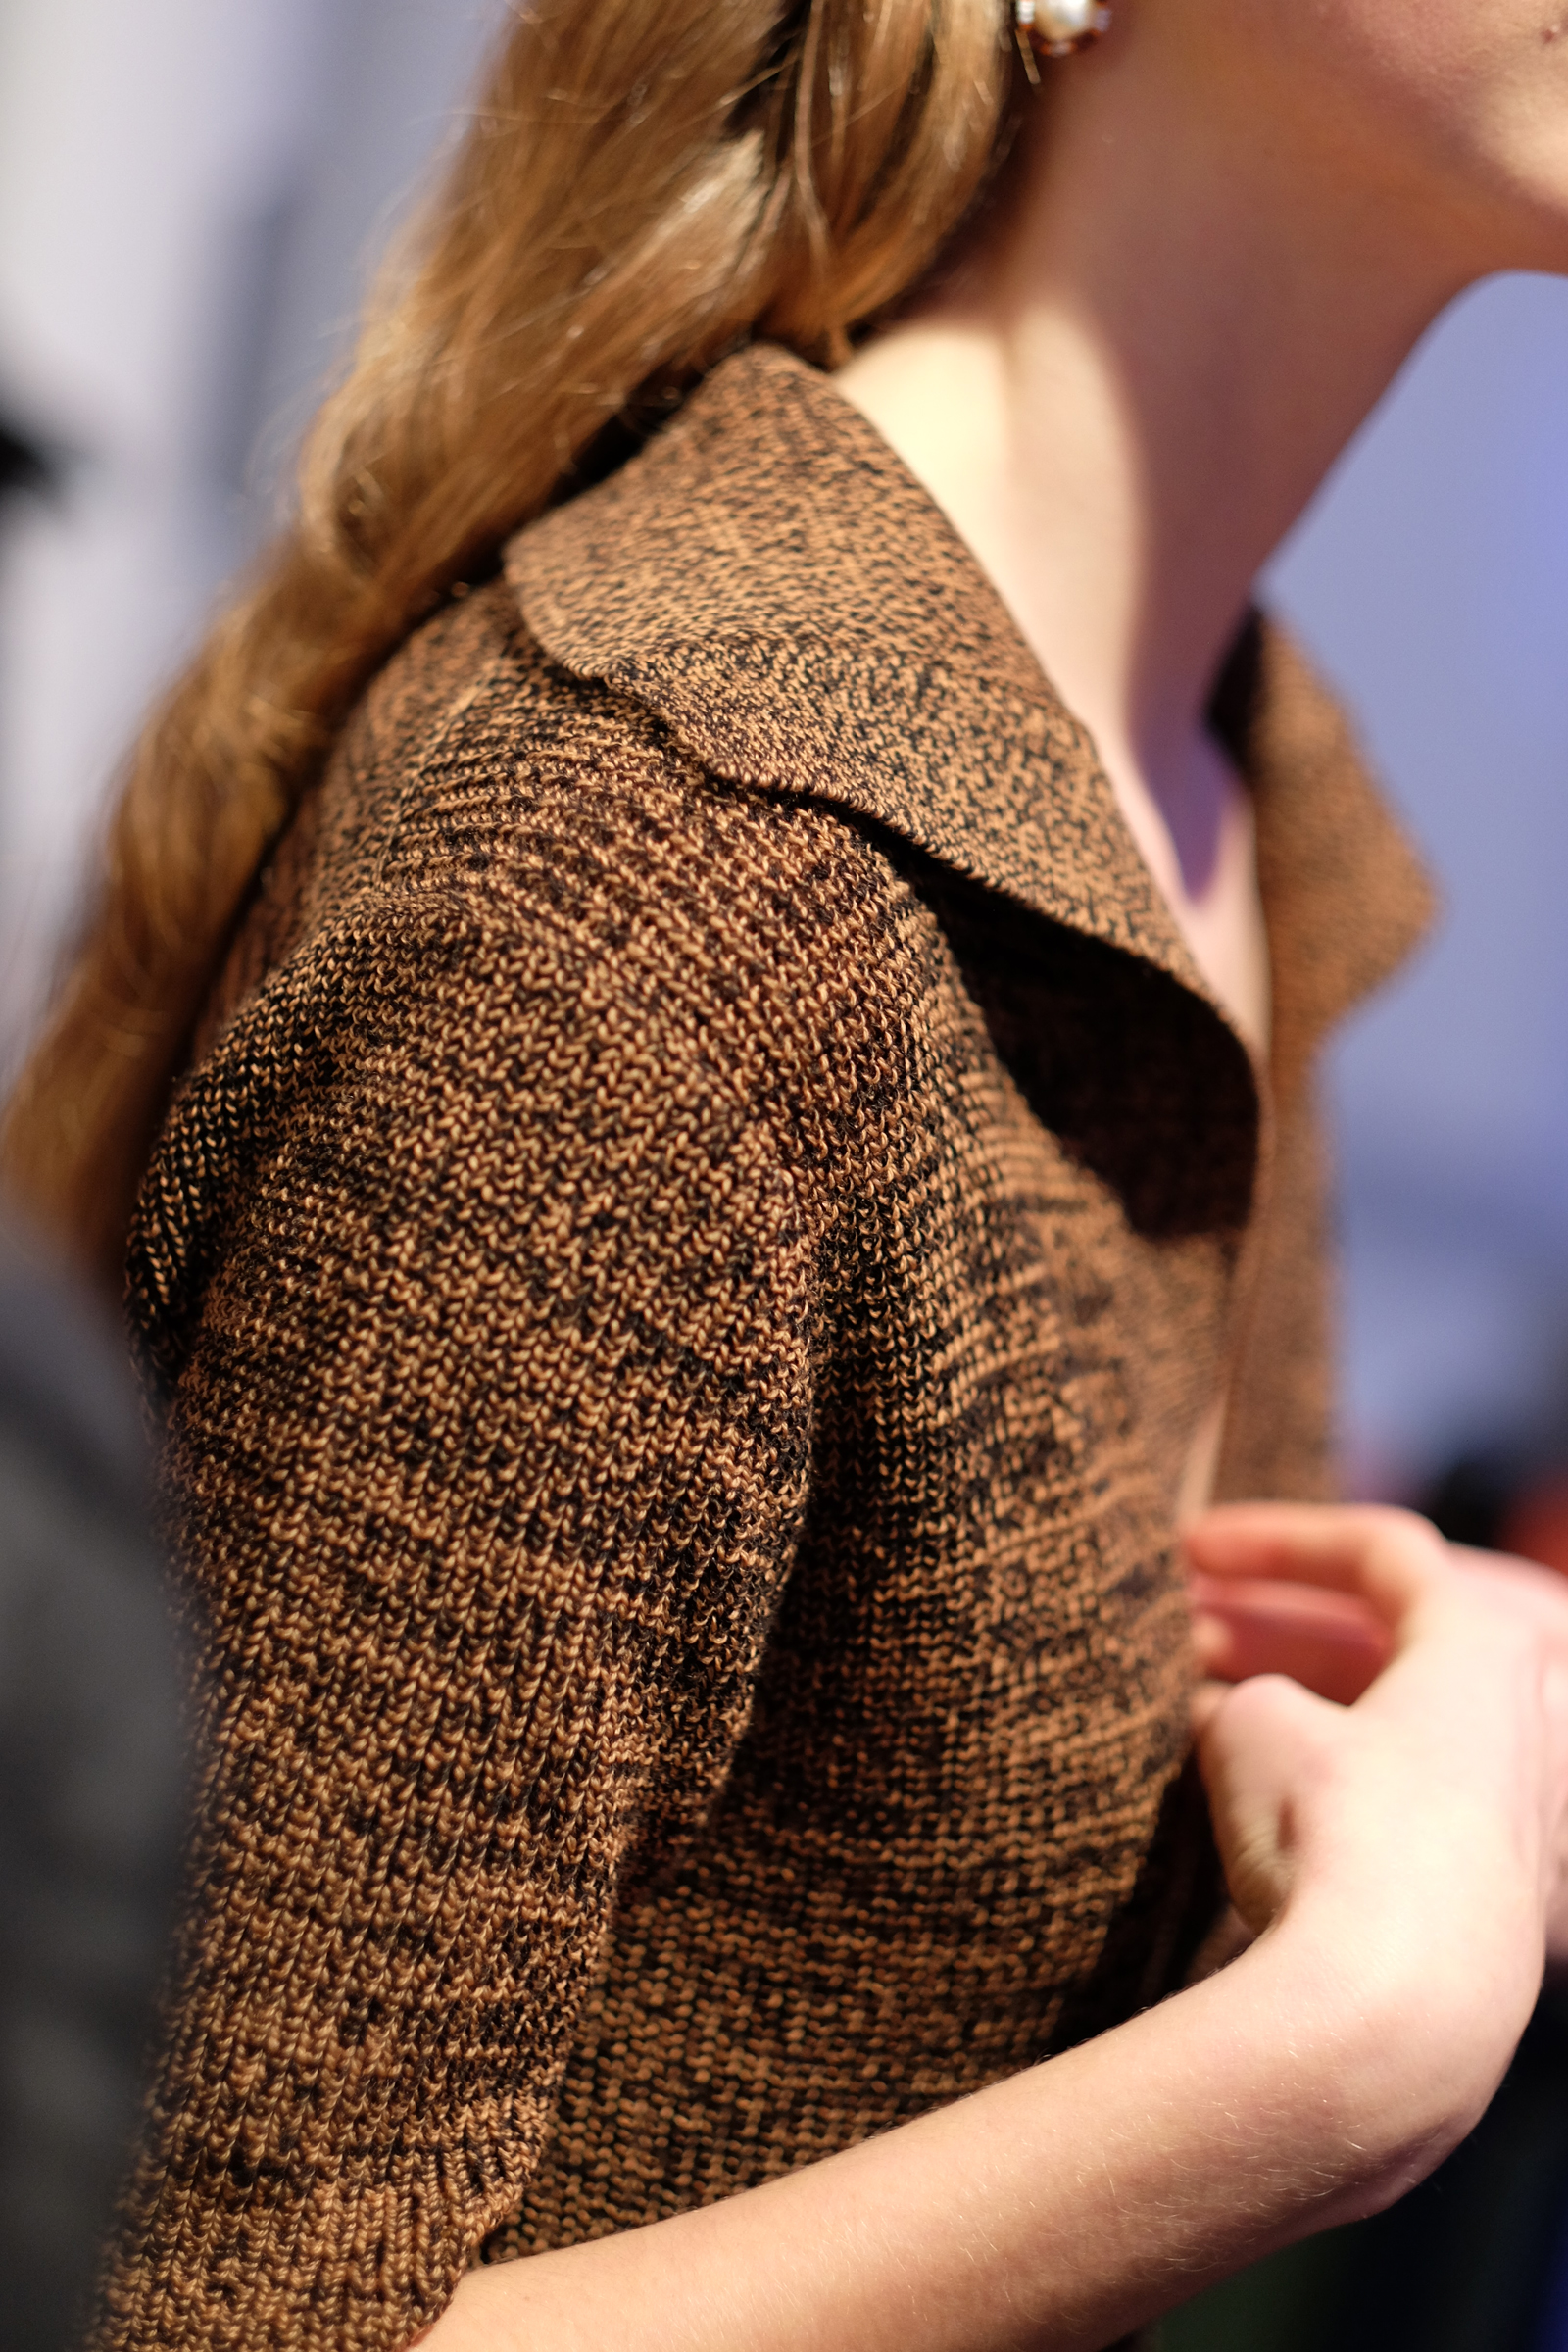 Brown knit polo backstage at Penny Sage's NZFW show | Chloe Hill Fashion Week Coverage 2016